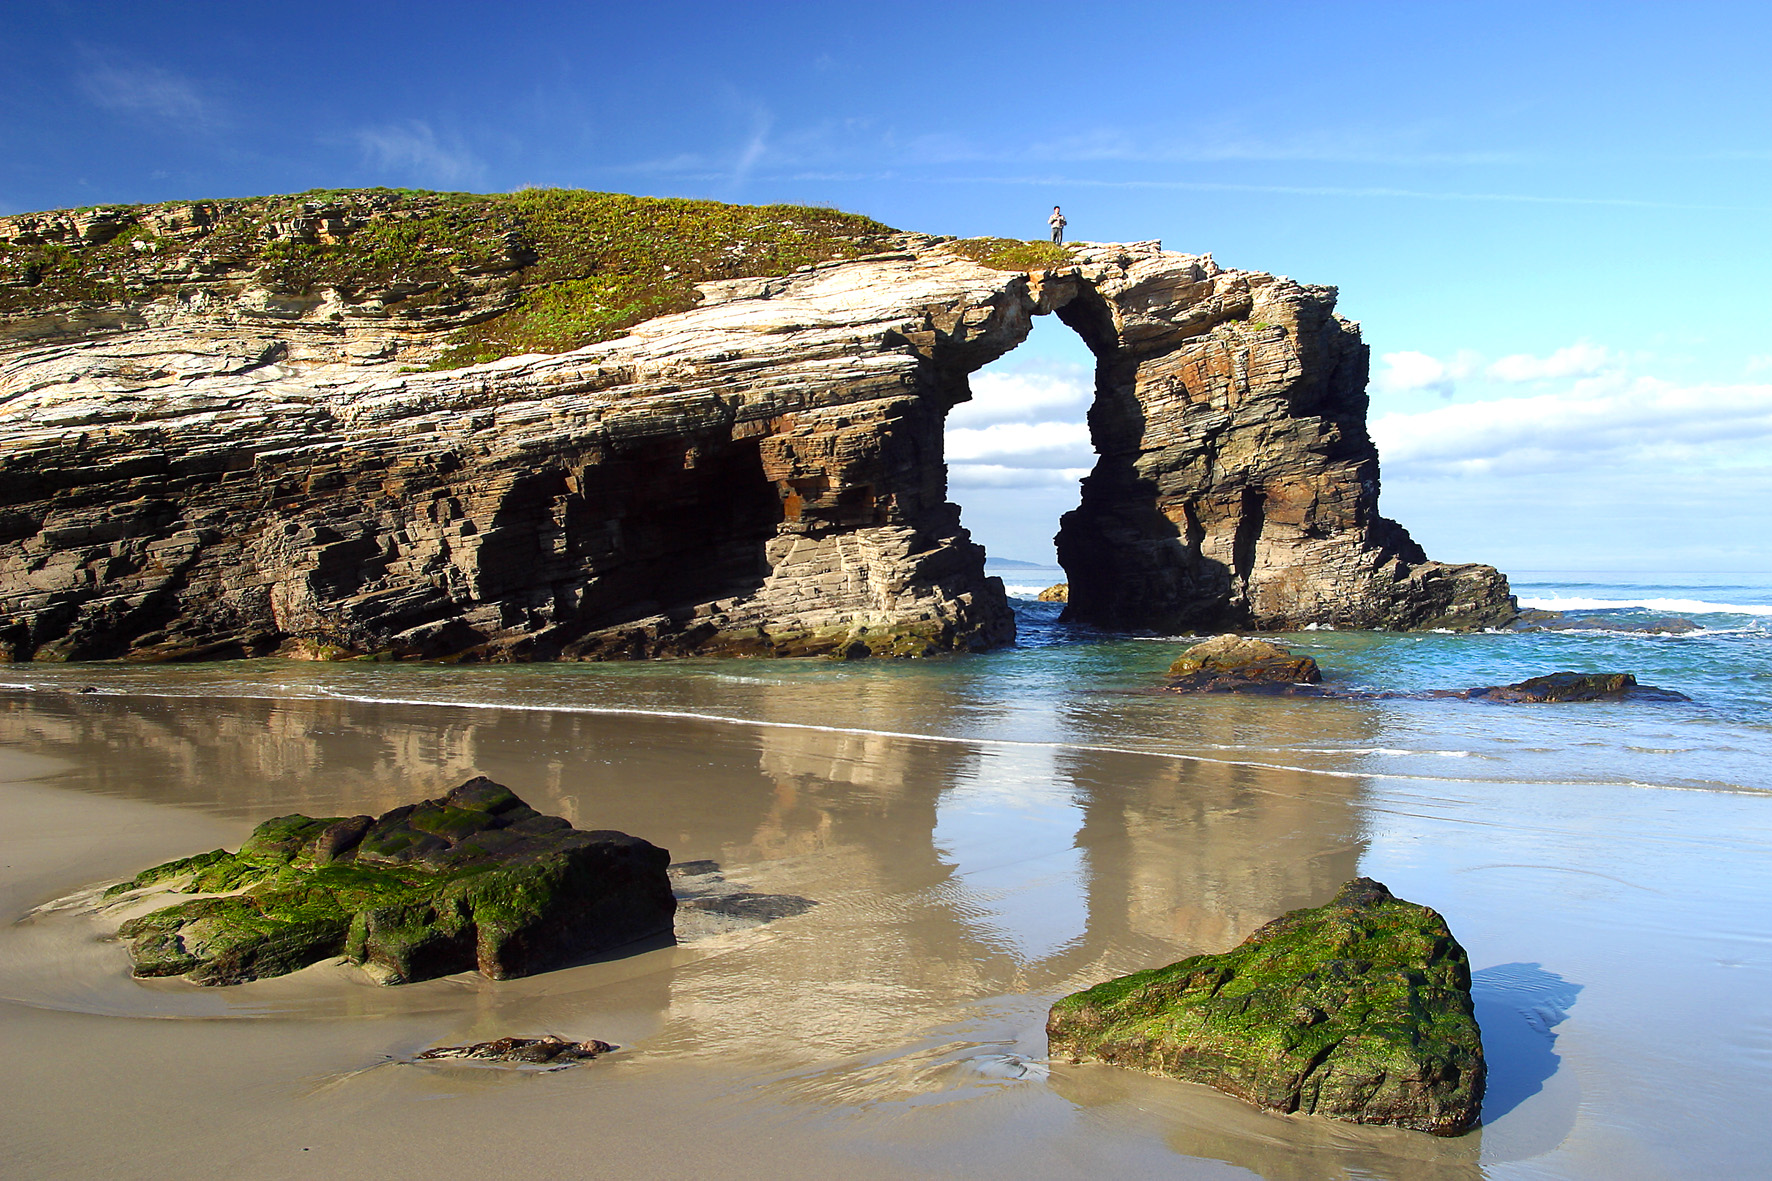 Visiting the Northern Coast & Cathedral Beach in Galicia